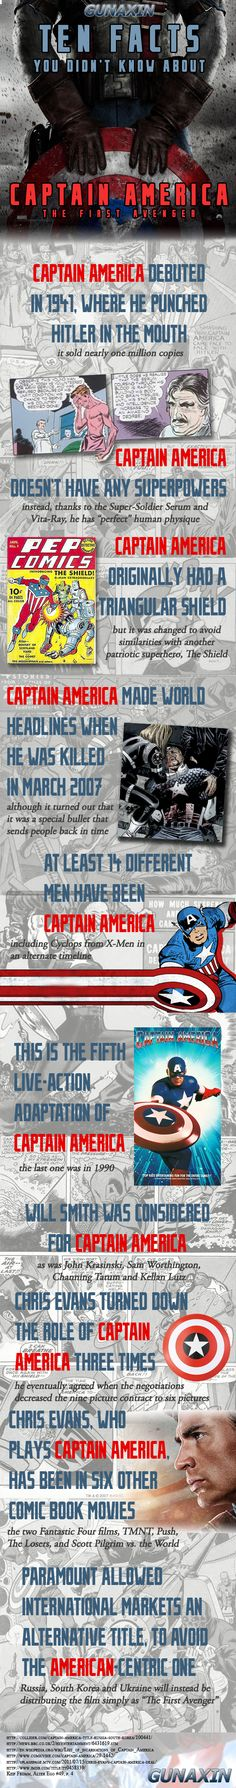 Ten Facts You Didn't Know About Captain America